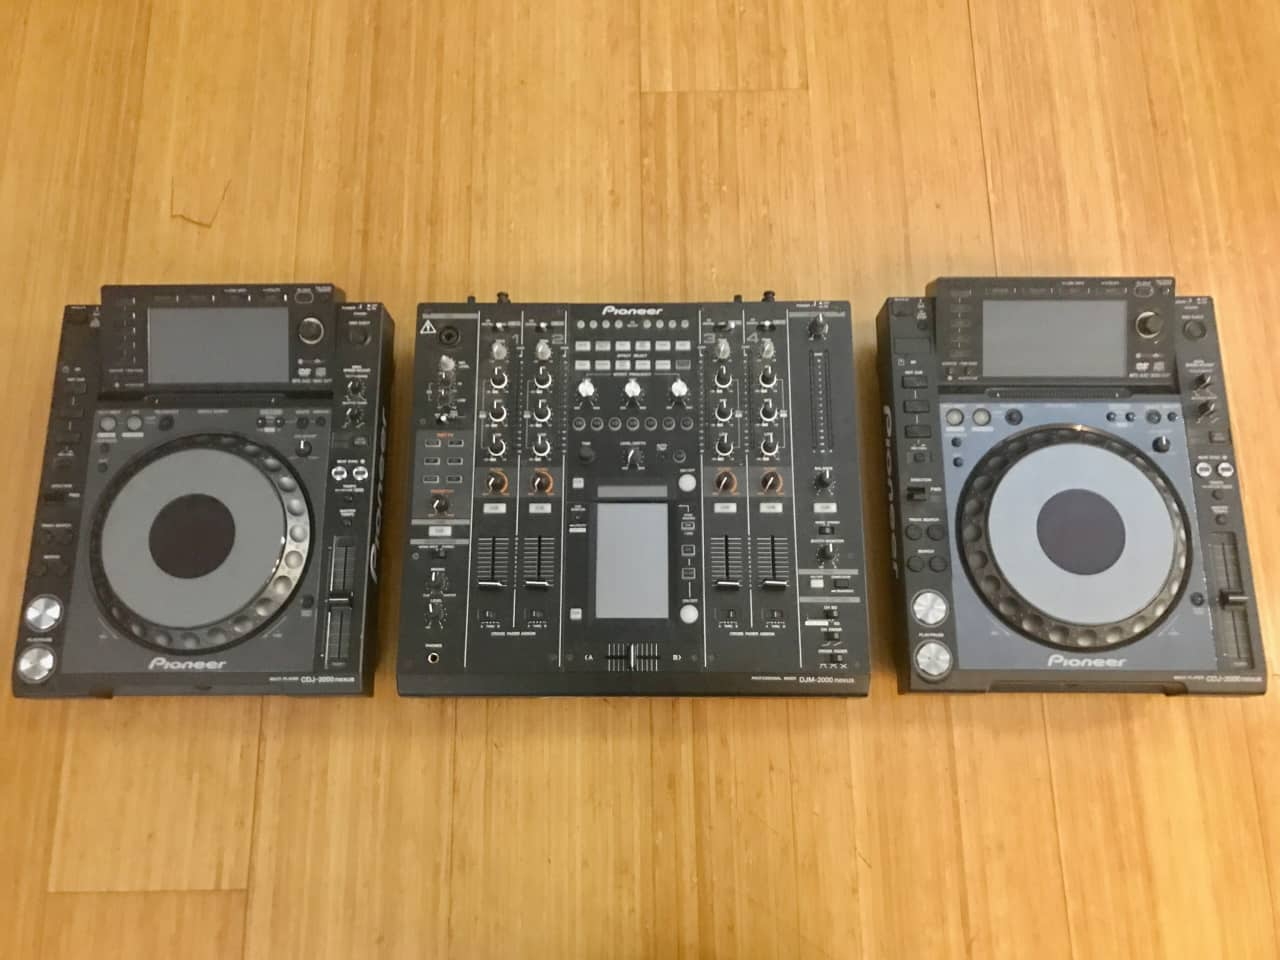 pioneer cdj 2000 nexus x2 w djm 2000 nexus 4 channel mixer reverb. Black Bedroom Furniture Sets. Home Design Ideas